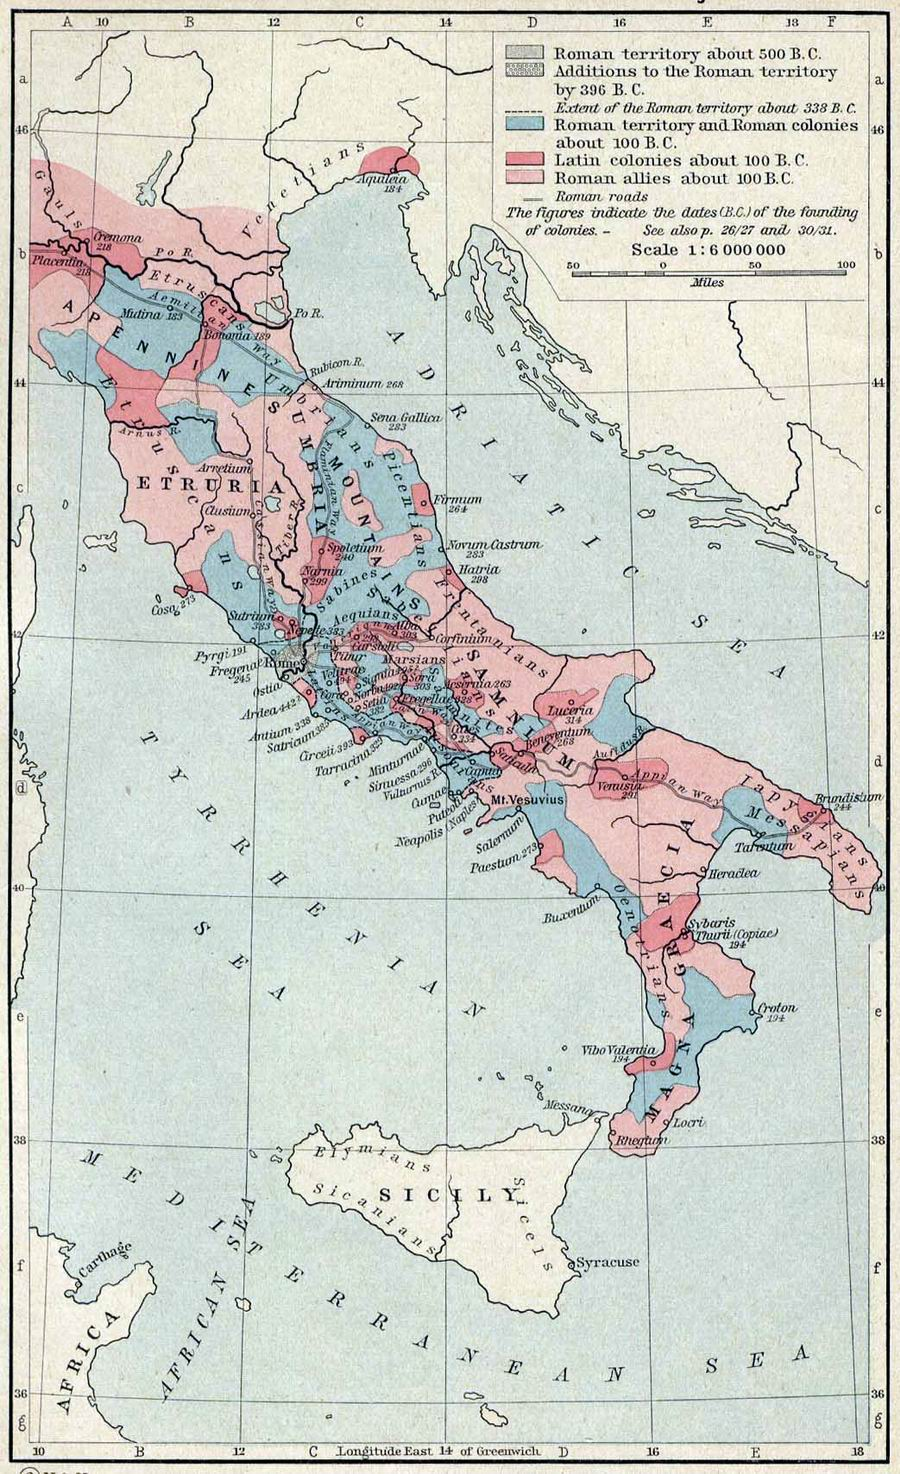 an analysis of the unification of italy Two important pieces of the puzzle remained to complete italy's unification: venice and rome, held by austria and france respectively in each case.